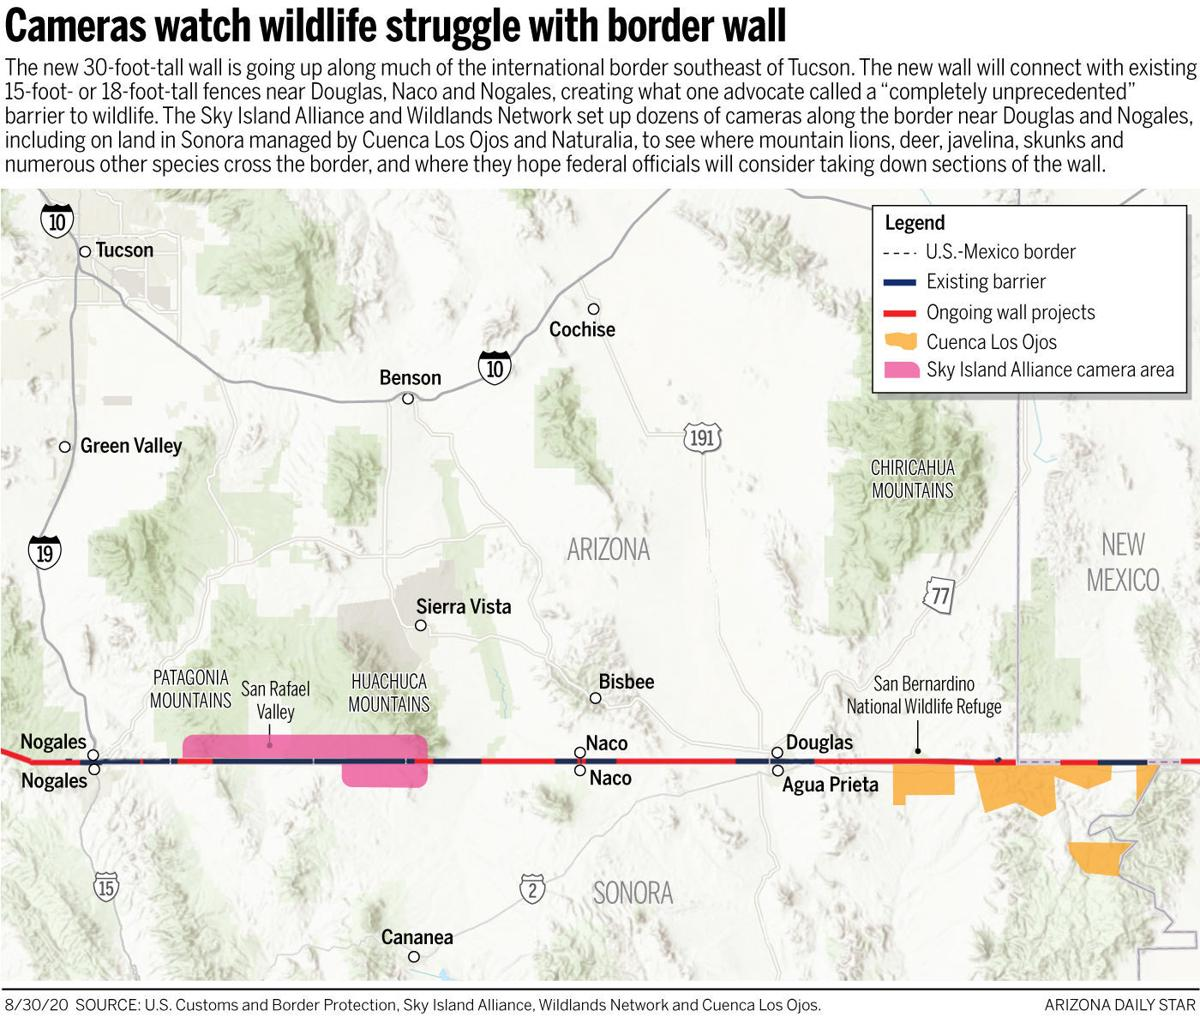 Tracking wildlife on the international border